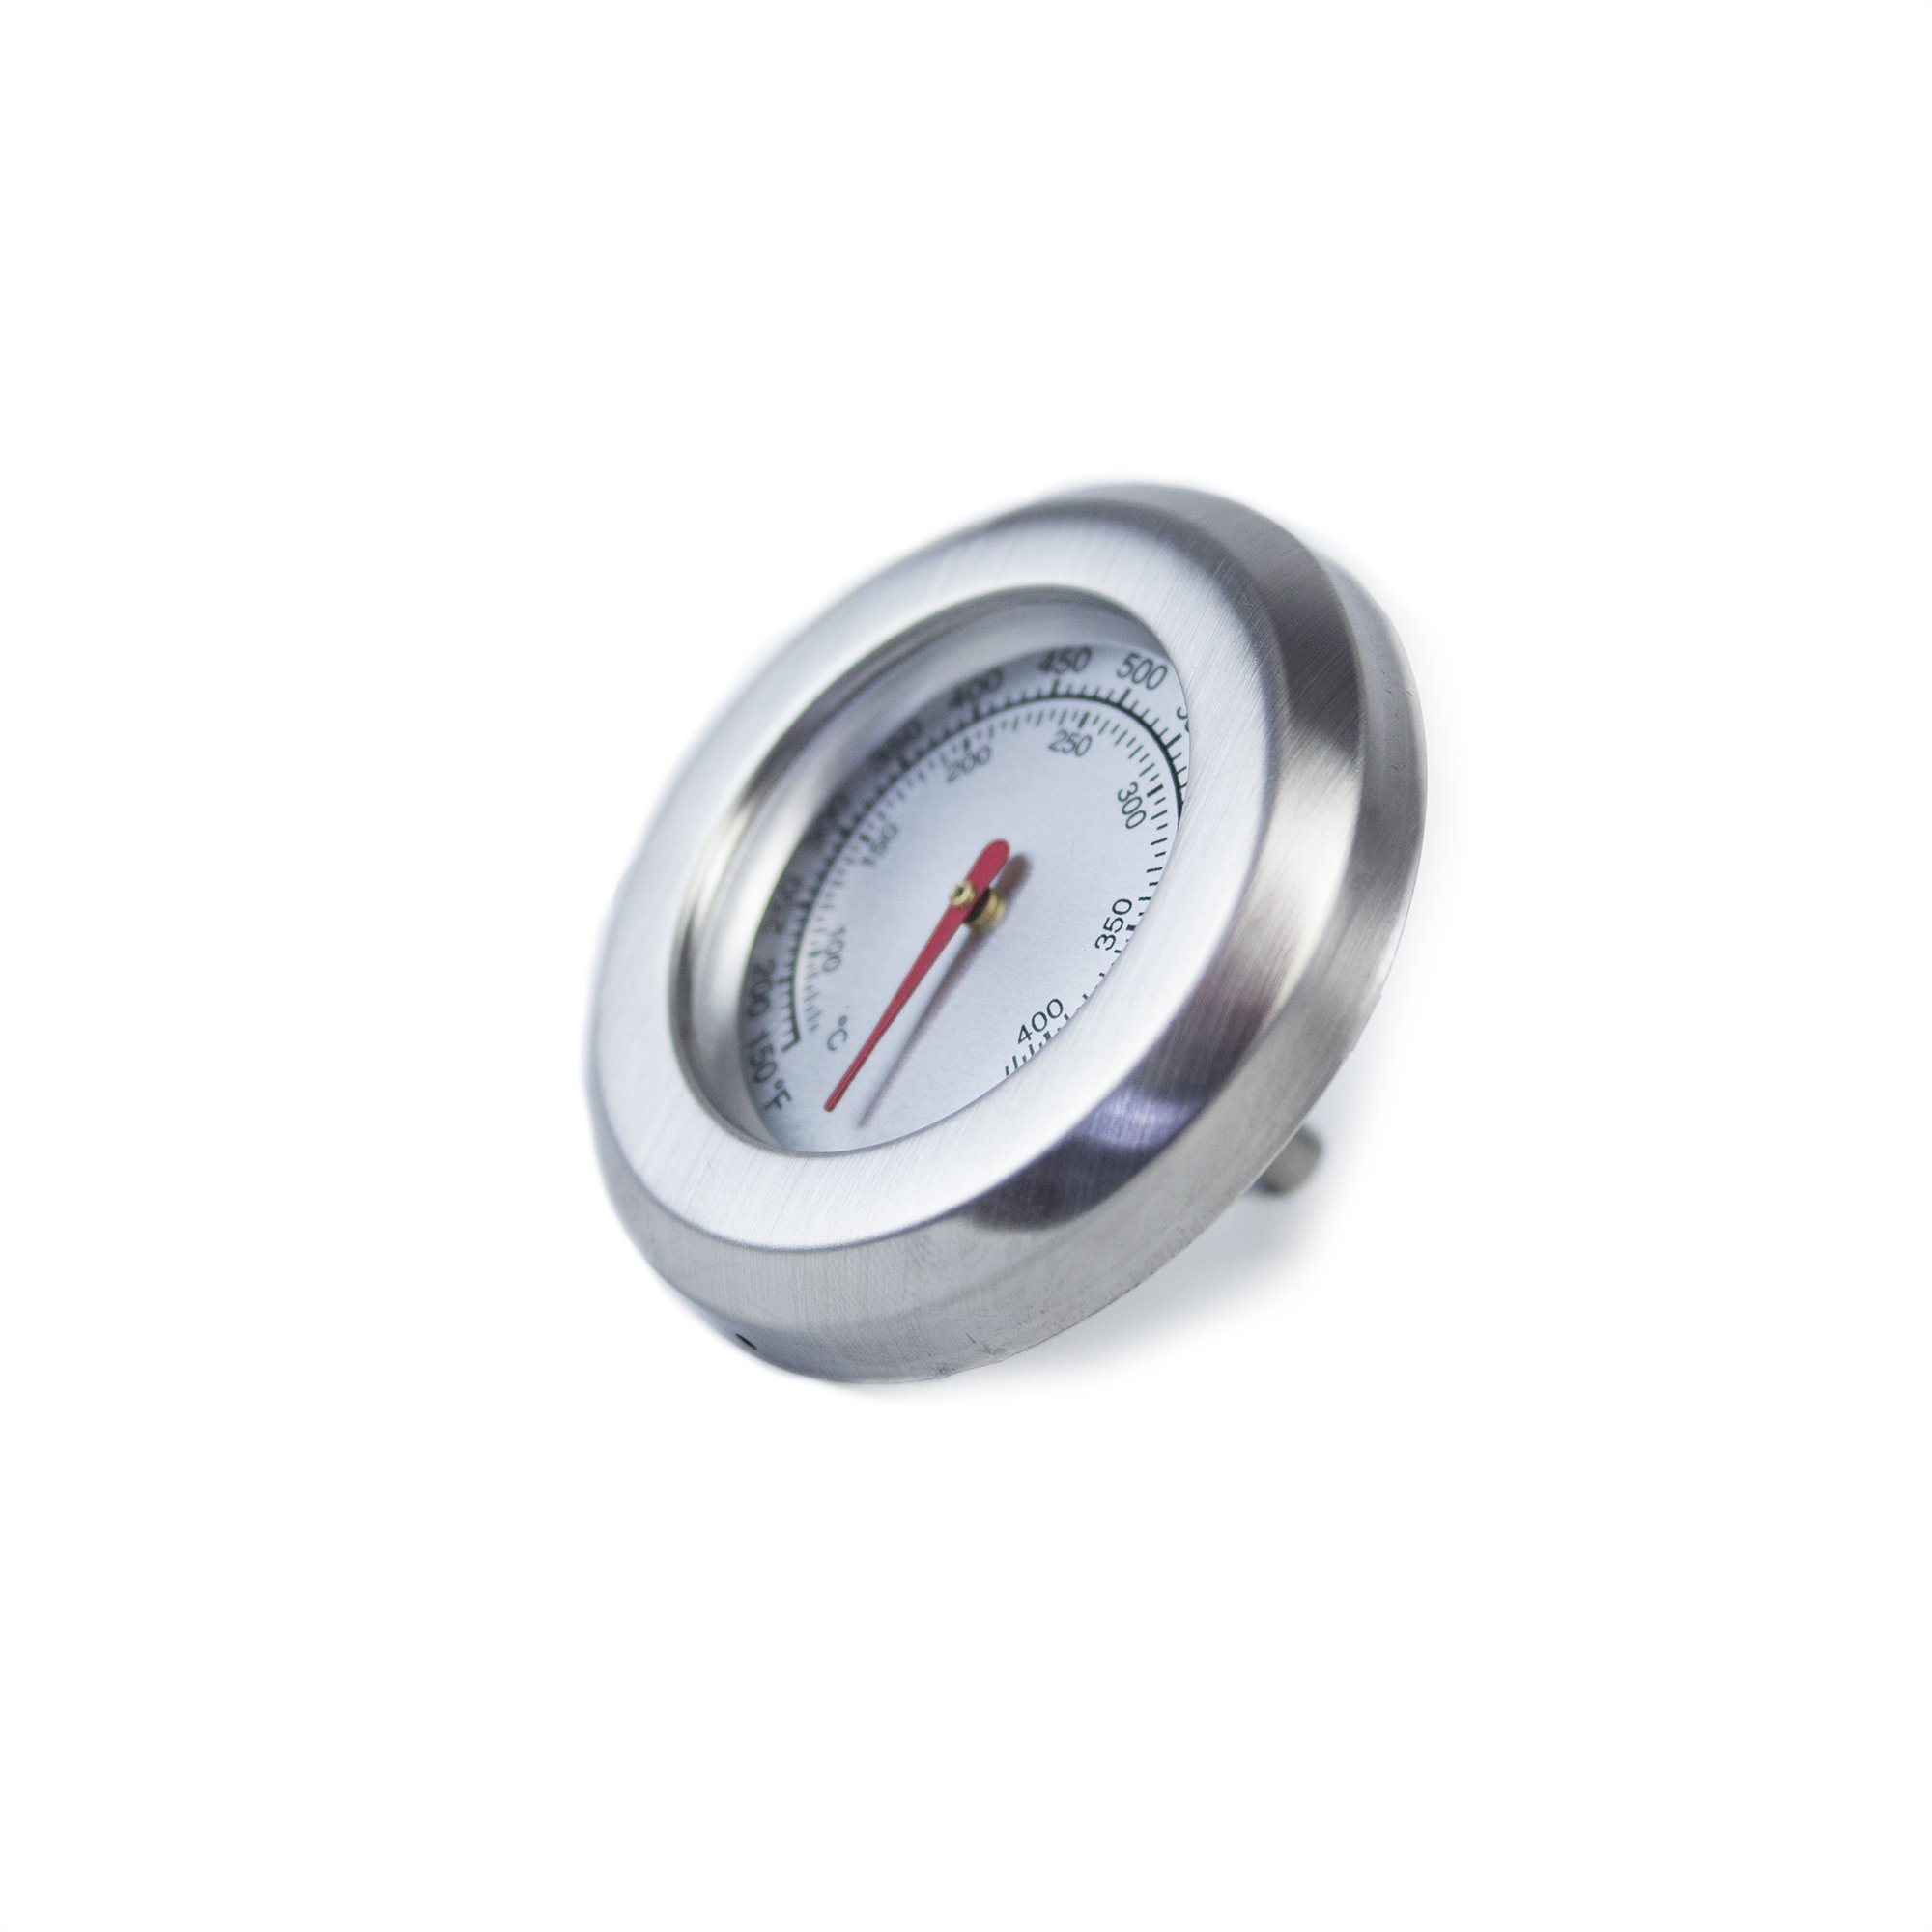 Dyna-Glo 102-02005 Temperature Gauge by Dyna-Glo